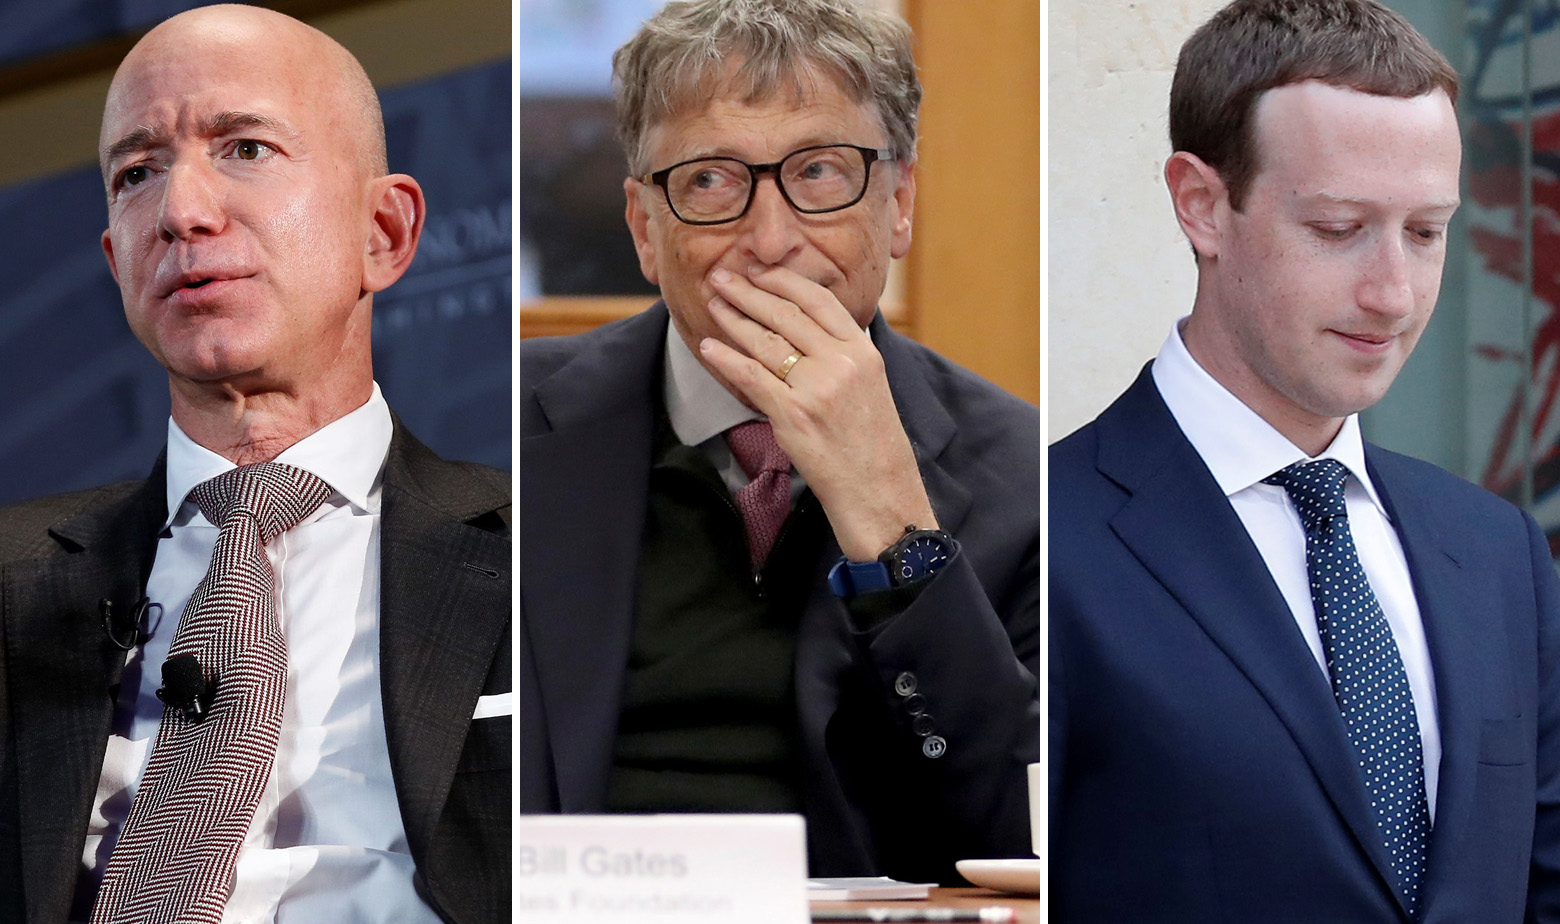 Jeff Bezos, Bill Gates, Mark Zuckerberg